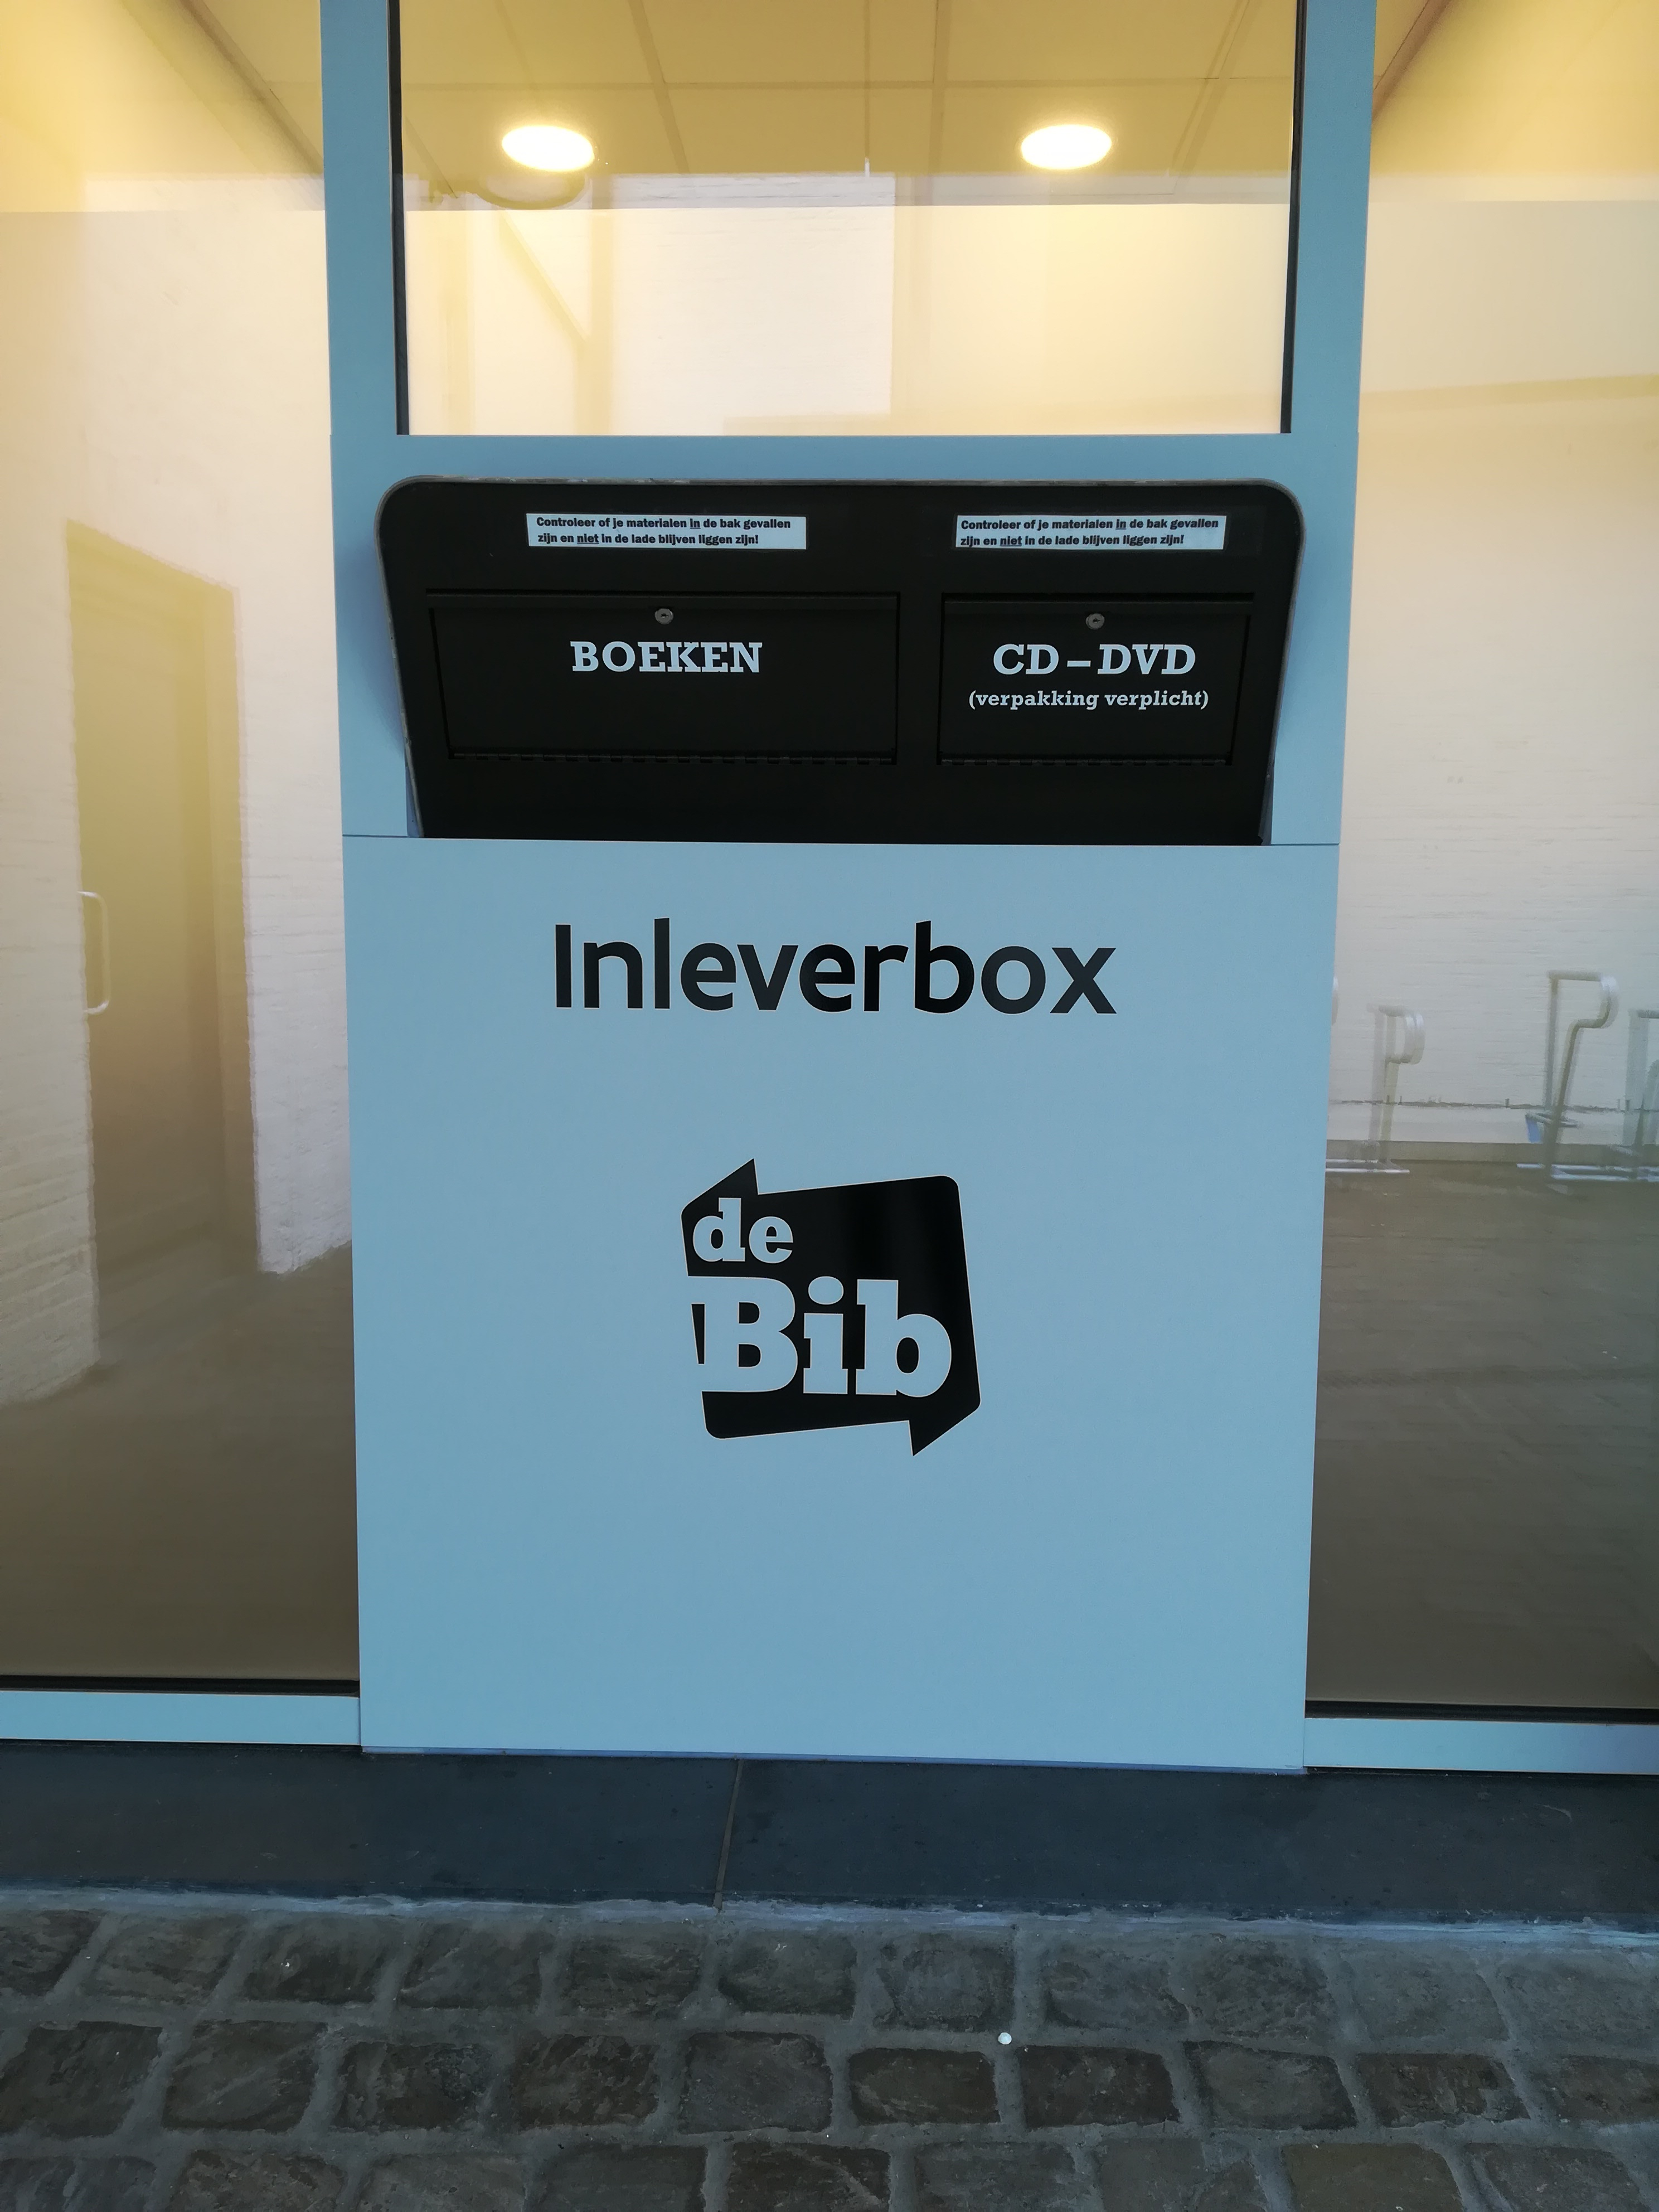 Inleverbox